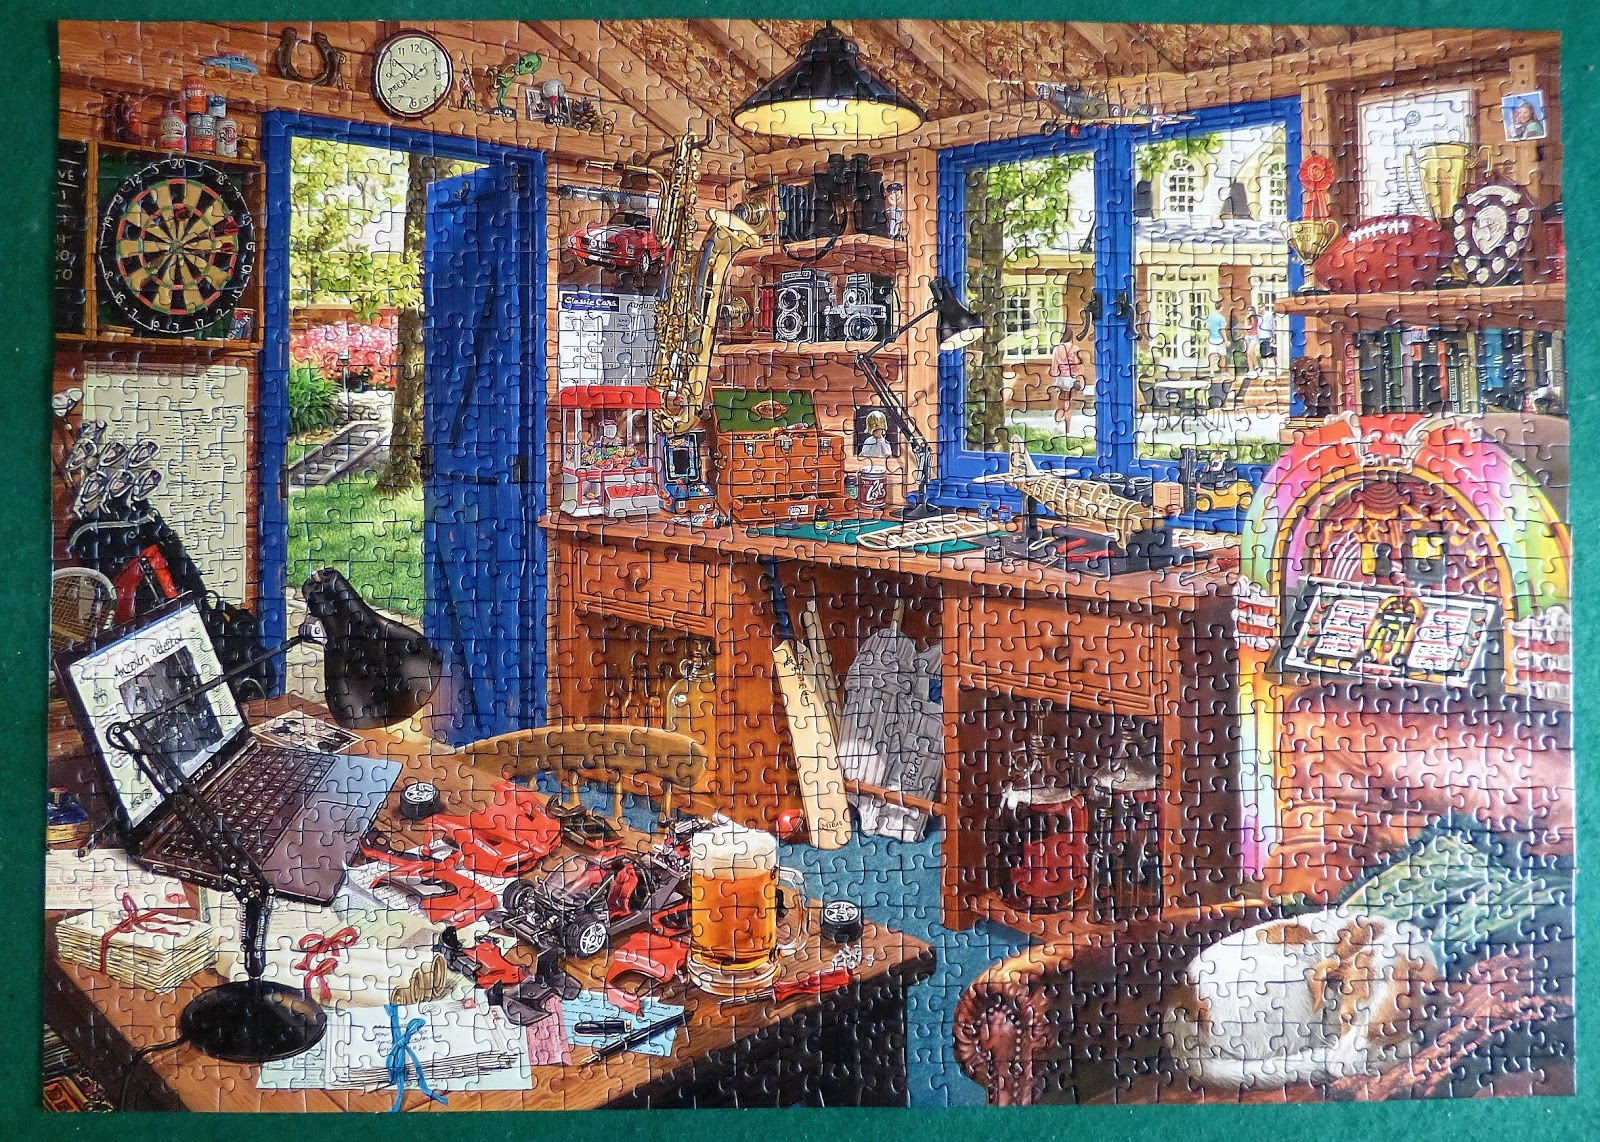 chez maximka my haven the man cave 1000 piece jigsaw. Black Bedroom Furniture Sets. Home Design Ideas